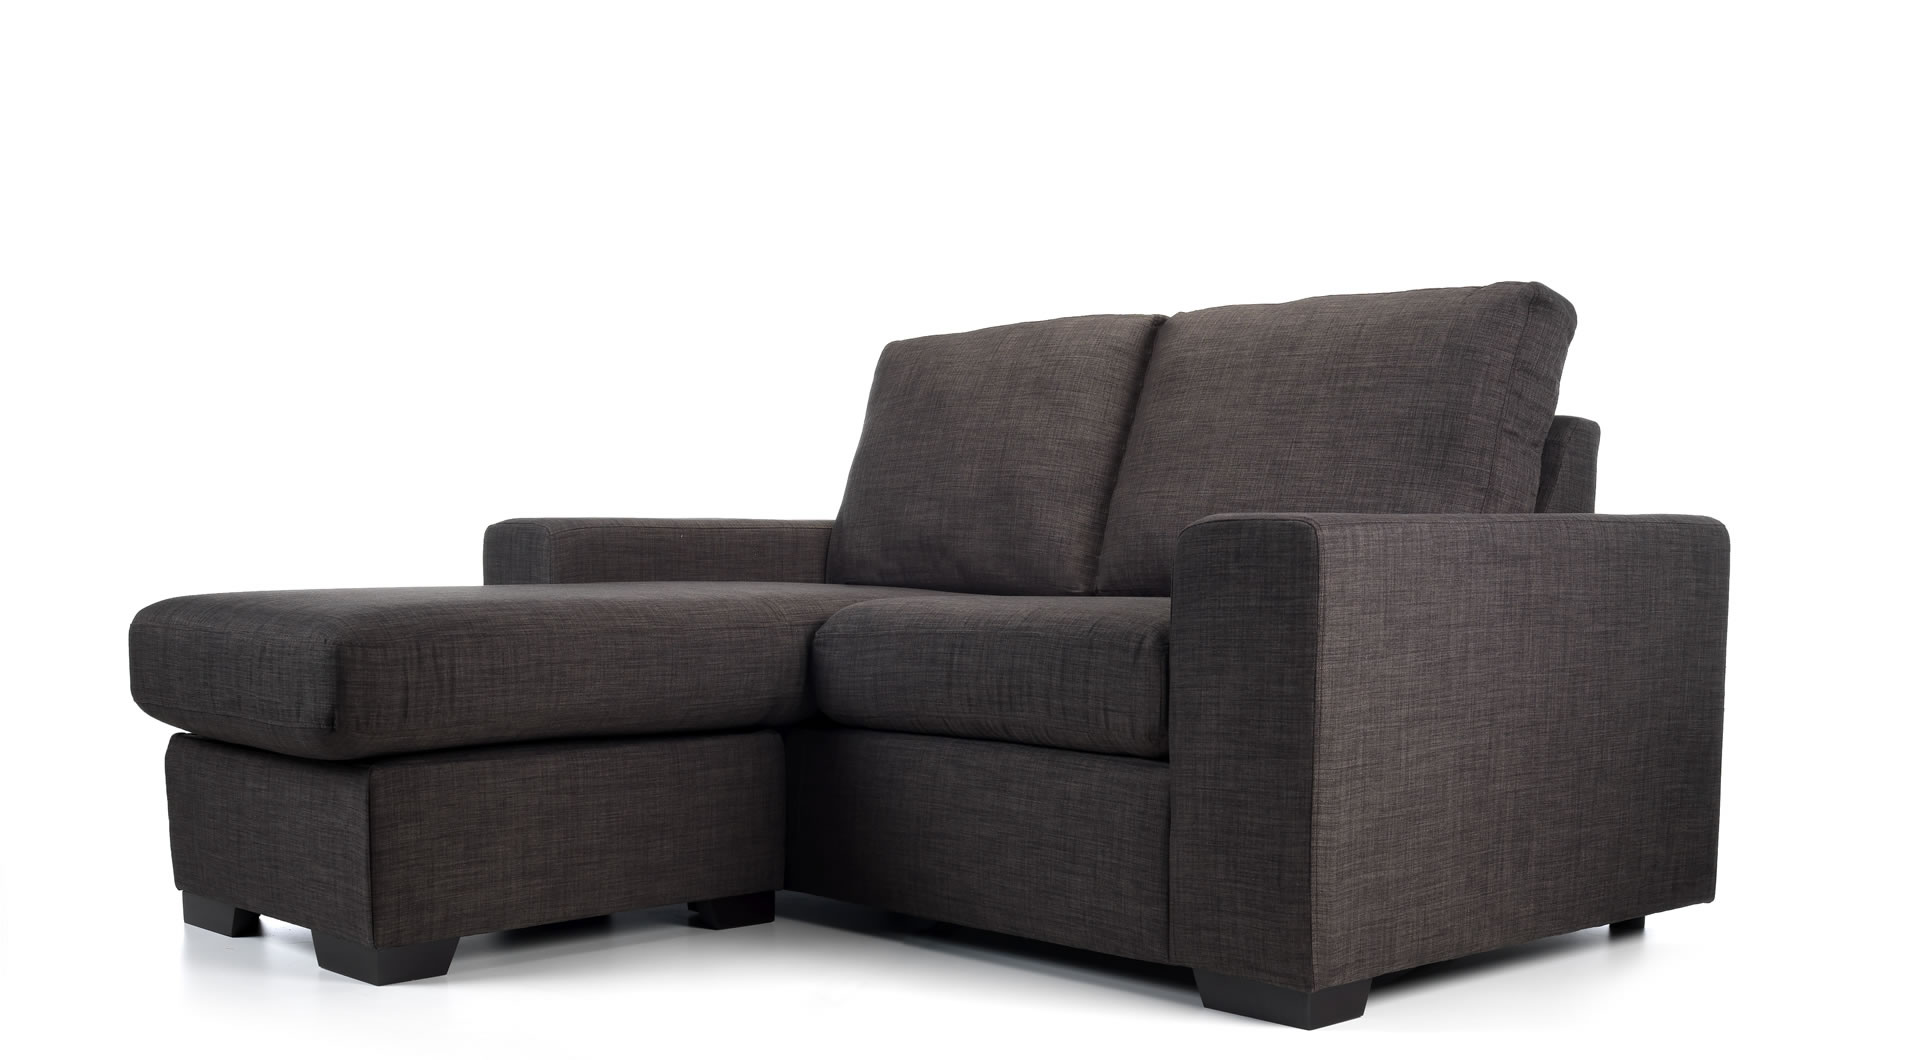 Buy Corner Sofa Bed Uk Looking For A Corner Sofa Bed To Maximise Your Small Space